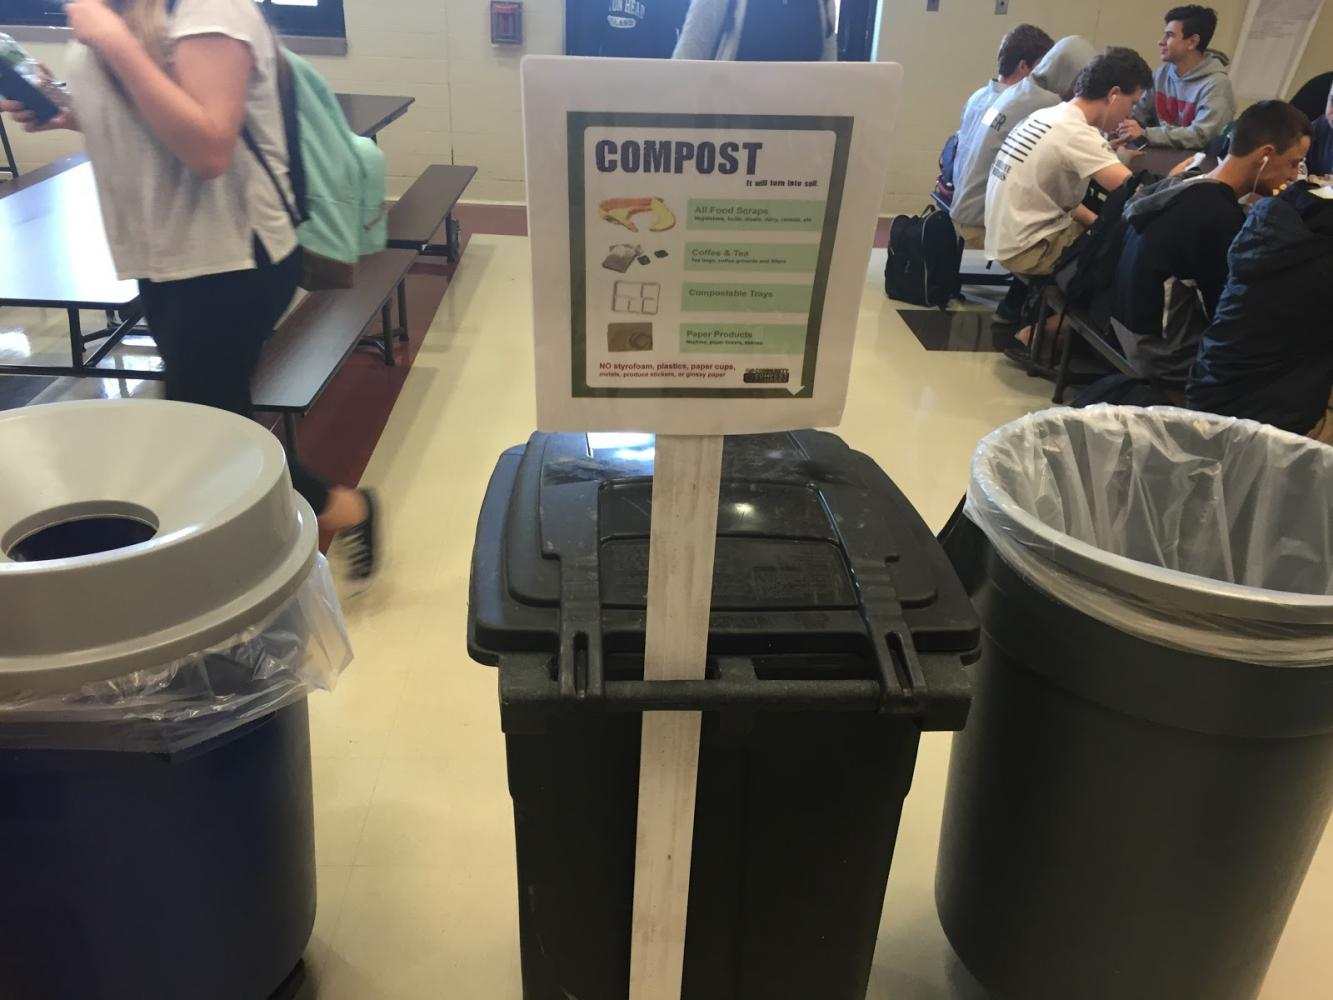 In the first week of May, the compost bin was finally put in the cafeteria for students to use during lunch. Environmental students sat near the compost bin to encourage and remind students they now have the option to compost.